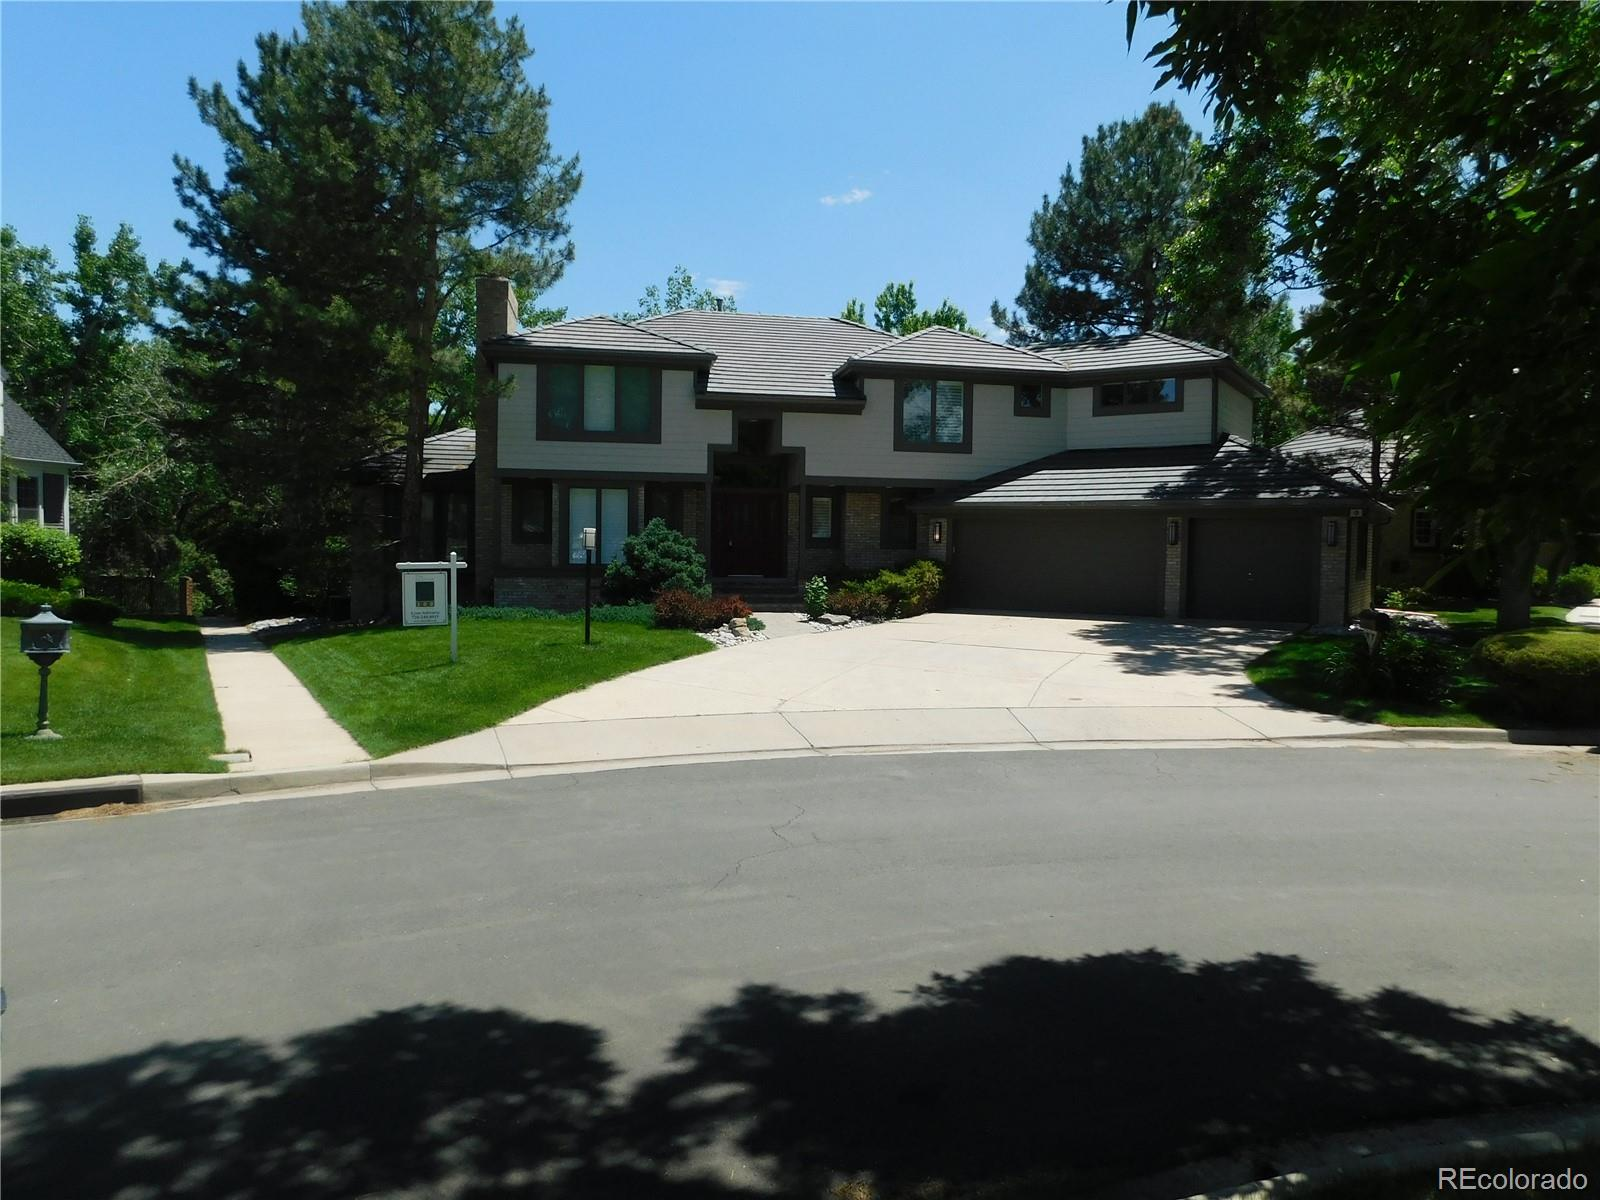 Beautiful updated custom contemporary home on a waterfront lot with mature trees located minutes from the Denver Tech Center. Features an open main floor with tall ceilings, fireplaces in the living room and family room, a bedroom/office with a covered deck and an elegant kitchen with an induction cooktop and quartz countertops. The dining room and family room open onto a second deck that overlooks the lake.  Upstairs is the master bedroom complete with a fireplace and newly renovated bathroom (2019) including heated floors and walk-in closet. An additional three bedrooms each have updated baths. The upstairs also includes an open study area with a built-in desk.  The finished basement includes a 6th bedroom (or office) complete with a full bath. The spacious living area on this floor offers lots of natural light, garden level windows and 3 storage rooms with built-in shelves and closets.  This beautiful home has easy access to active walking and biking paths, community pools / tennis courts, and Cherry Creek Schools. With no adjacent neighbors to the front or rear there is plenty of privacy to enjoy summer evenings on the decks, walking the neighborhood paths, or just warming in front of one of the property's several fireplaces. A MUST SEE!